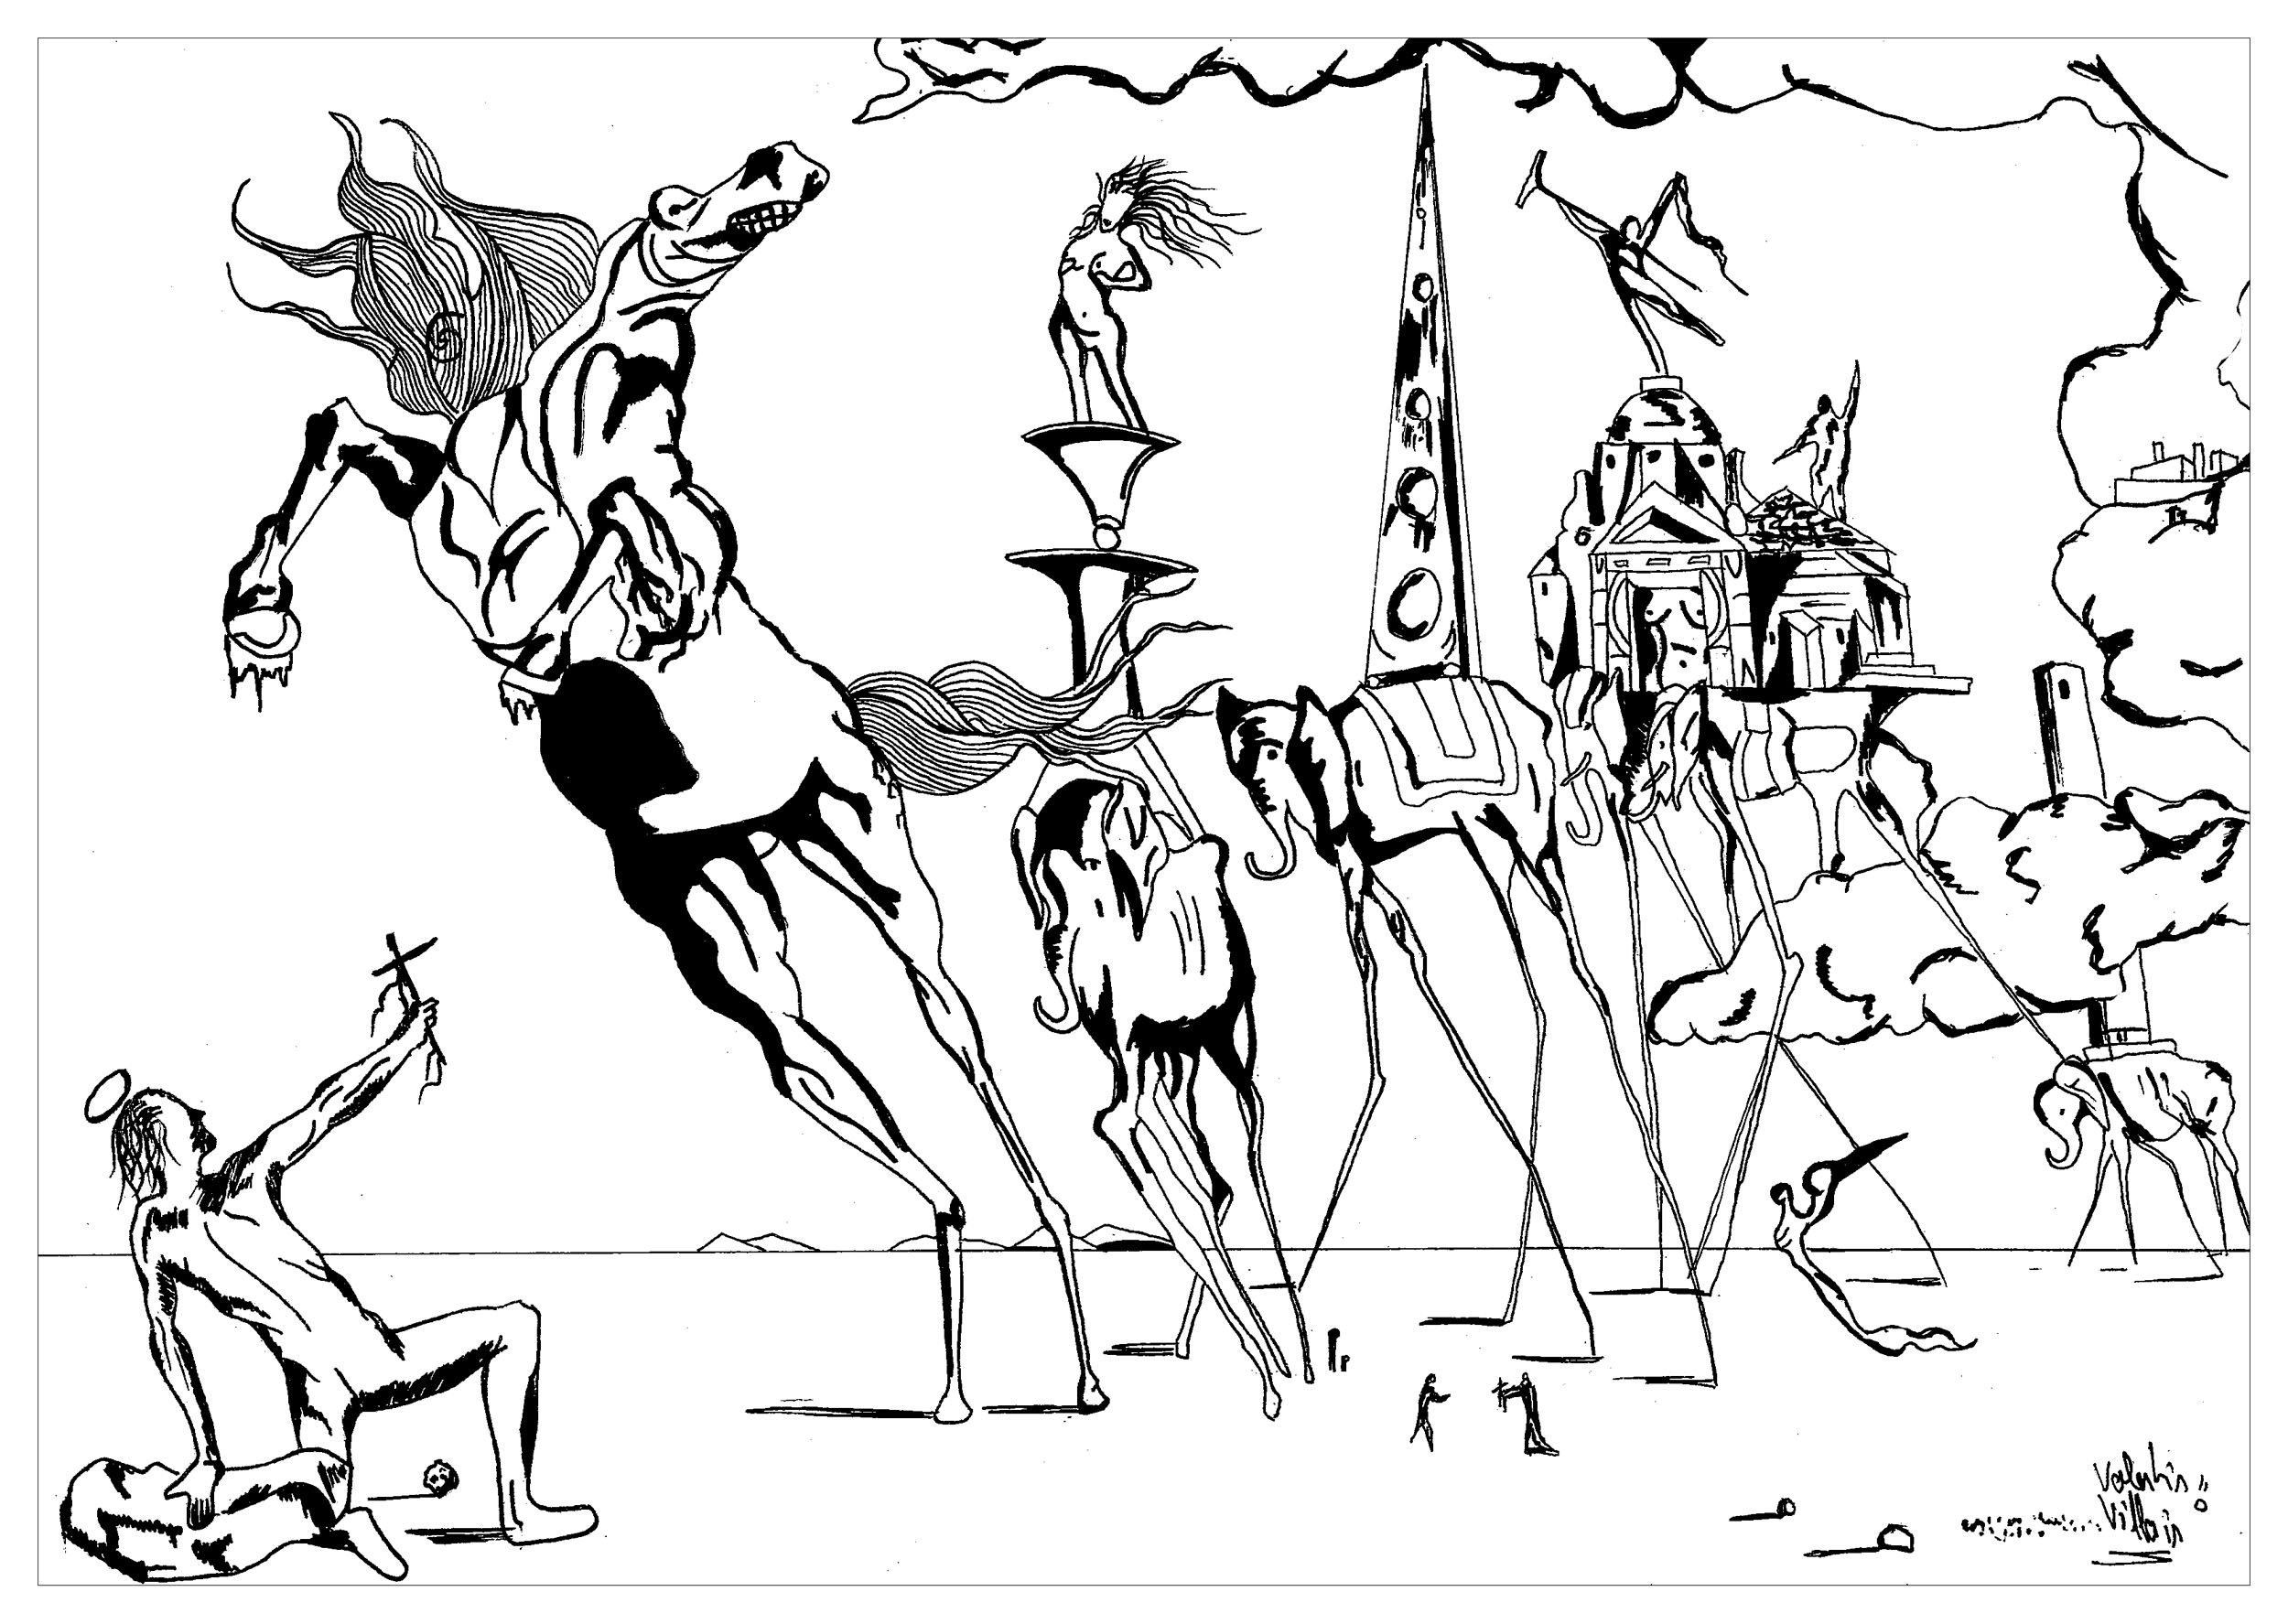 coloring page inspired by the painting the temptation of saint anthony by salvador dali